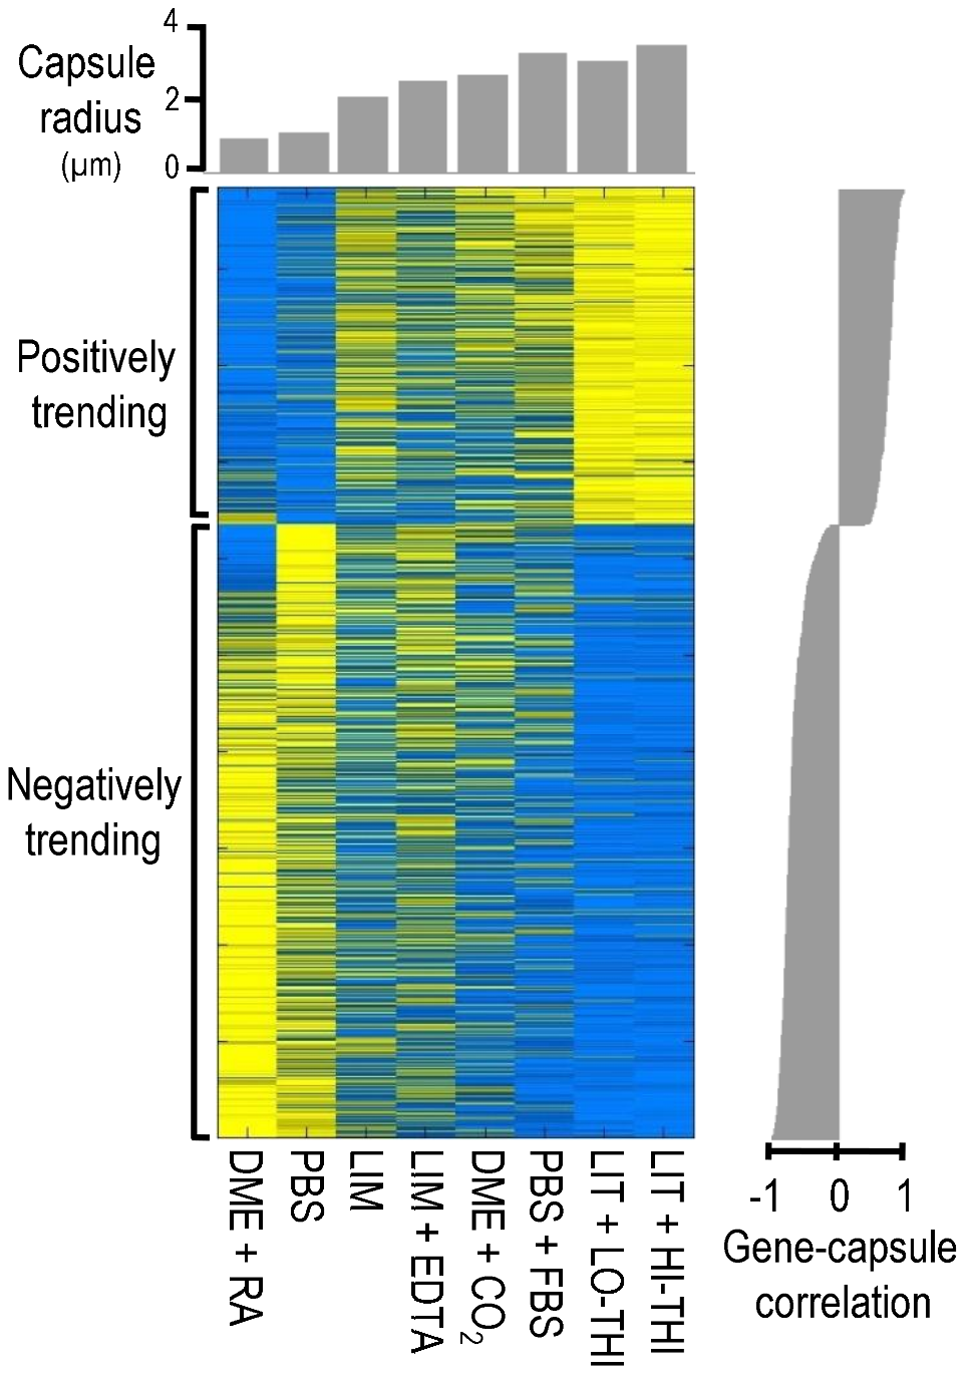 The transcriptional signature of capsule induction.